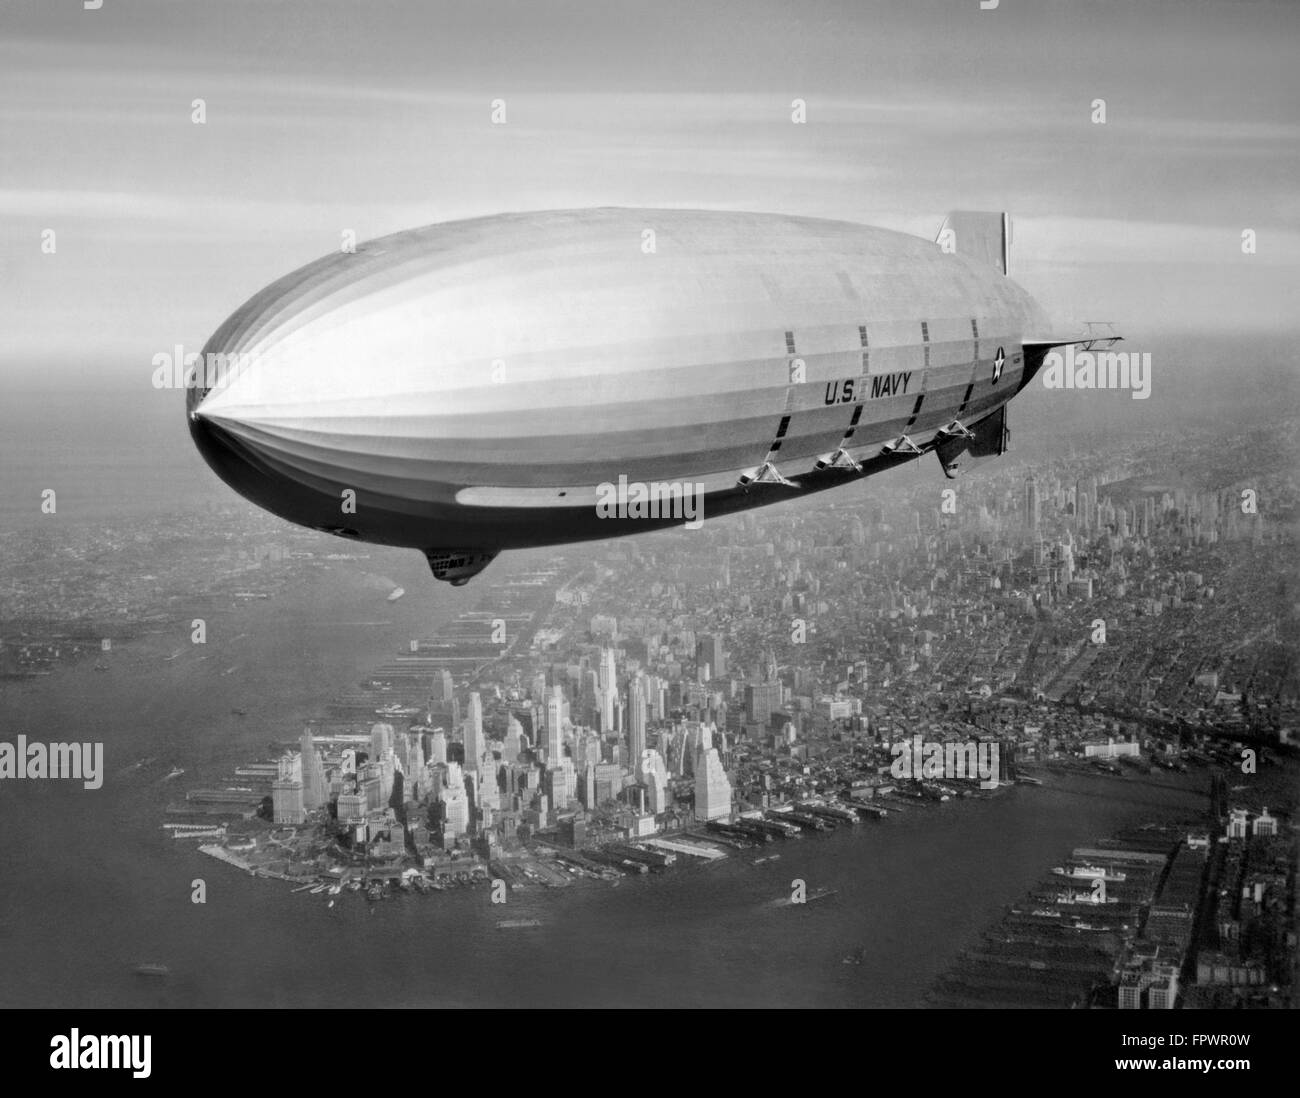 Vintage aviation photo of the USS Macon Airship flying over New York City, 1933. - Stock Image